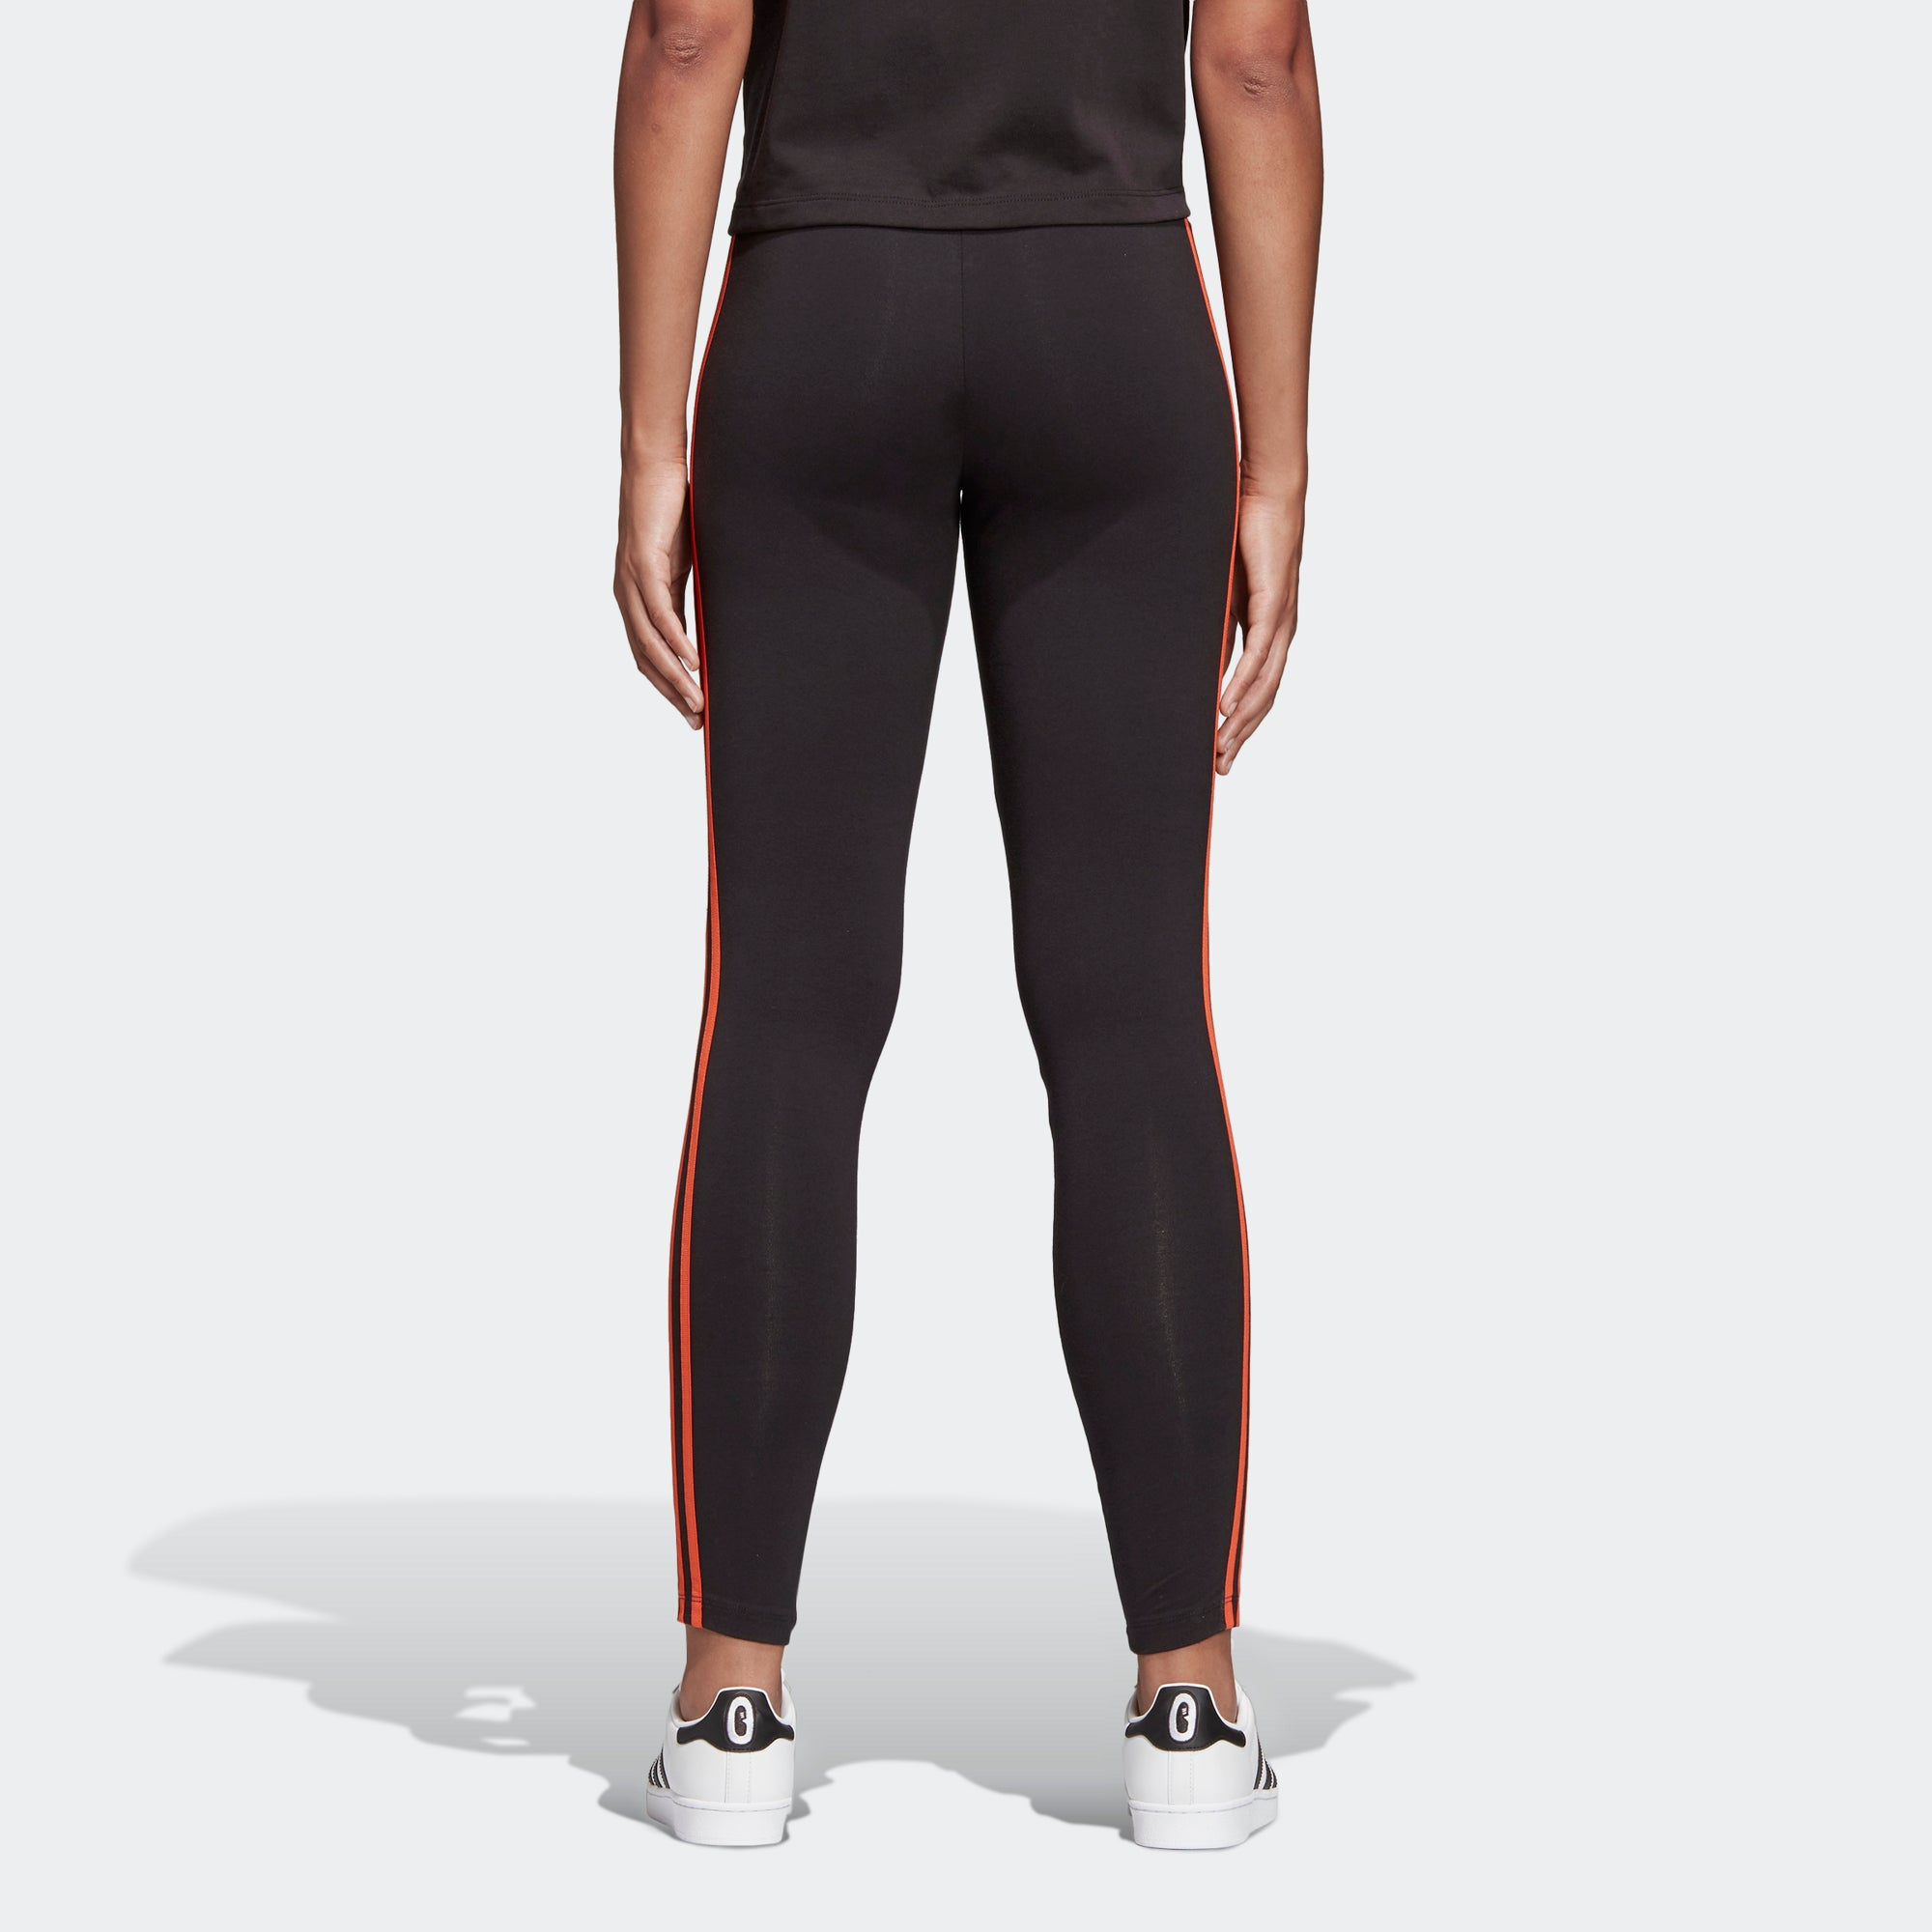 adidas Leggings Black Craft Orange DX2012 | Chicago City Sports